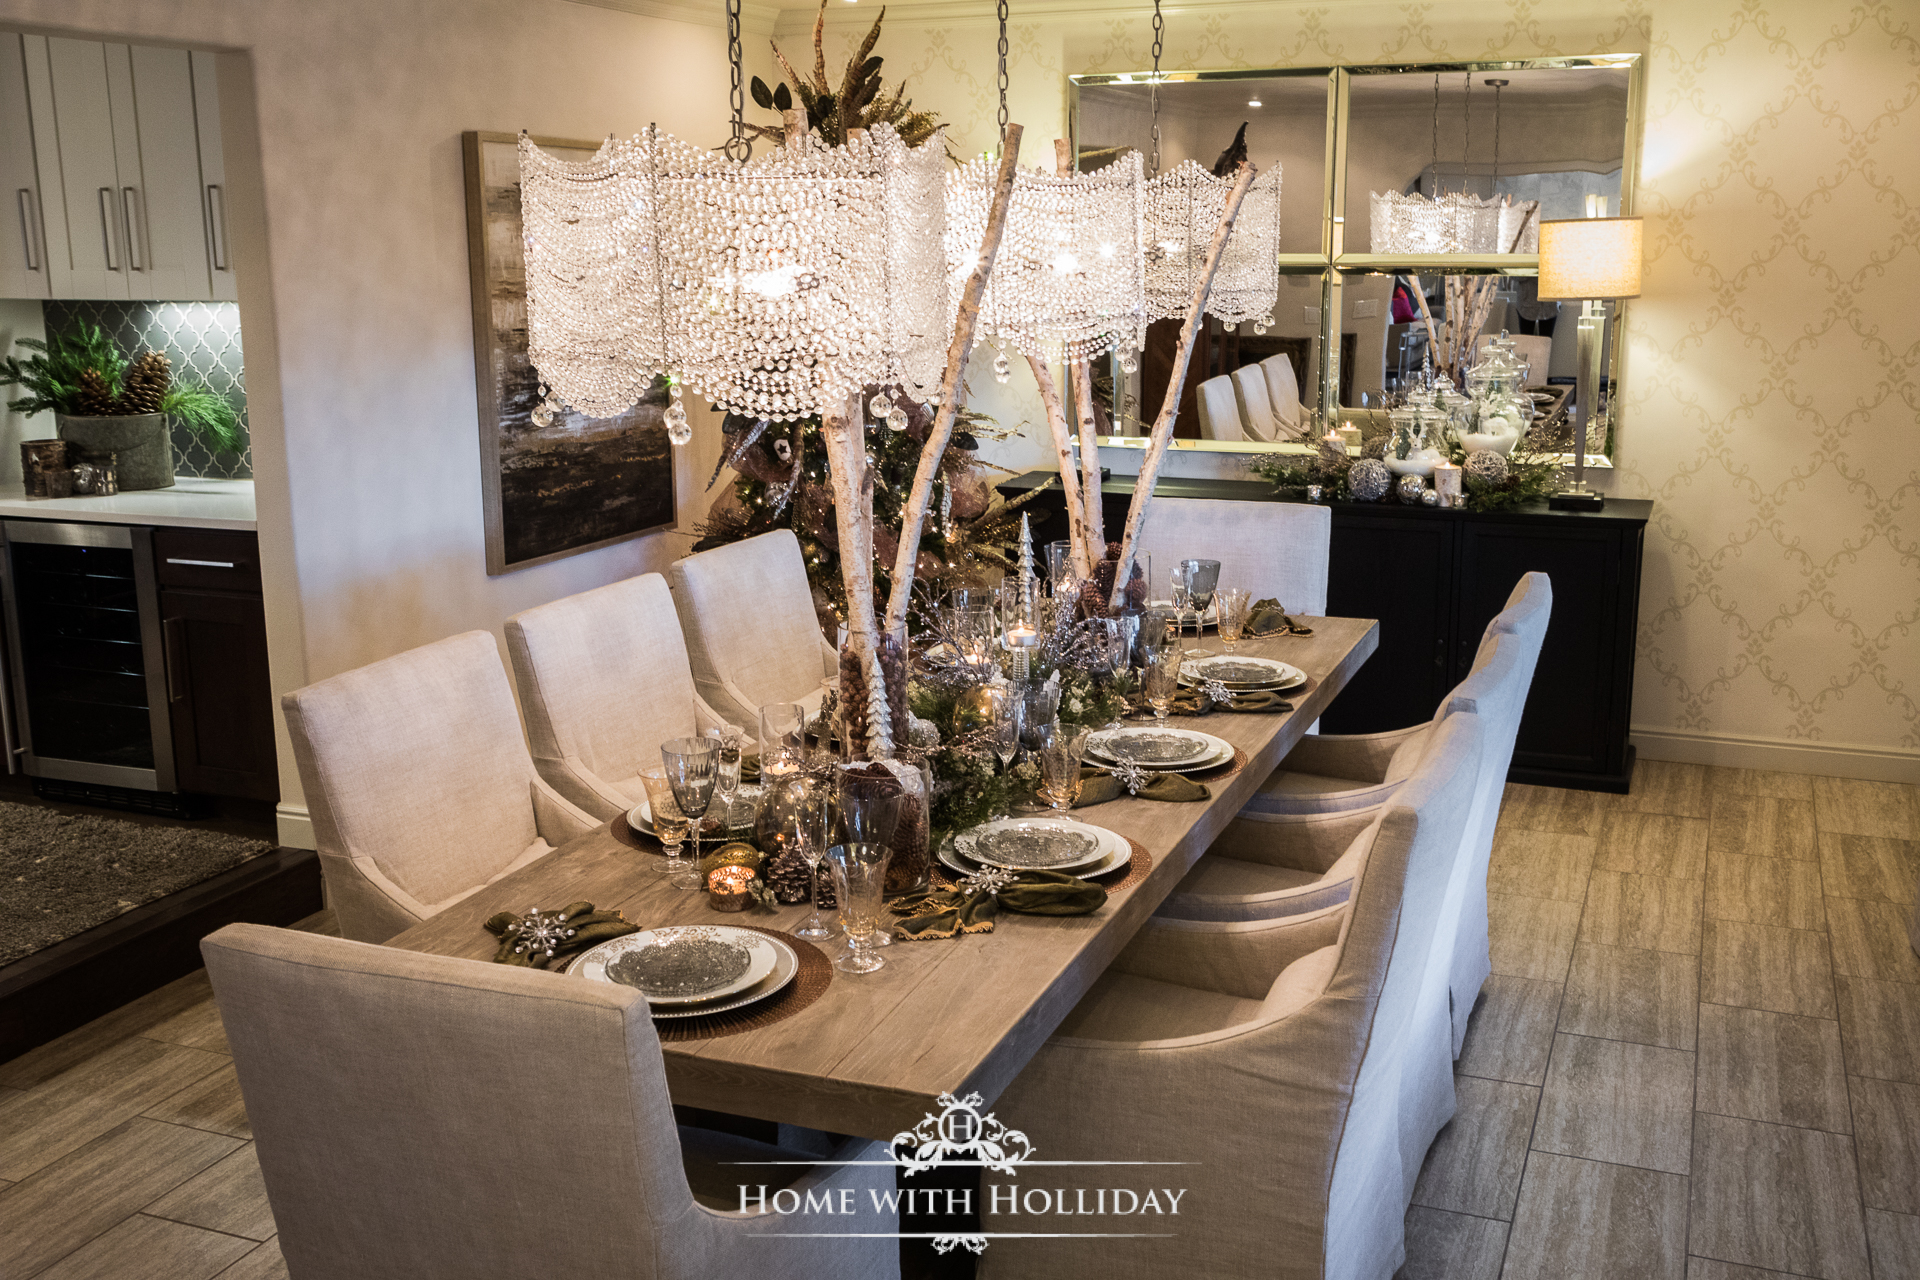 include my living room decor kitchen and breakfast room decor basement decorations my christmas trees and some gift wrapping inspirations - Breakfast Room Decor